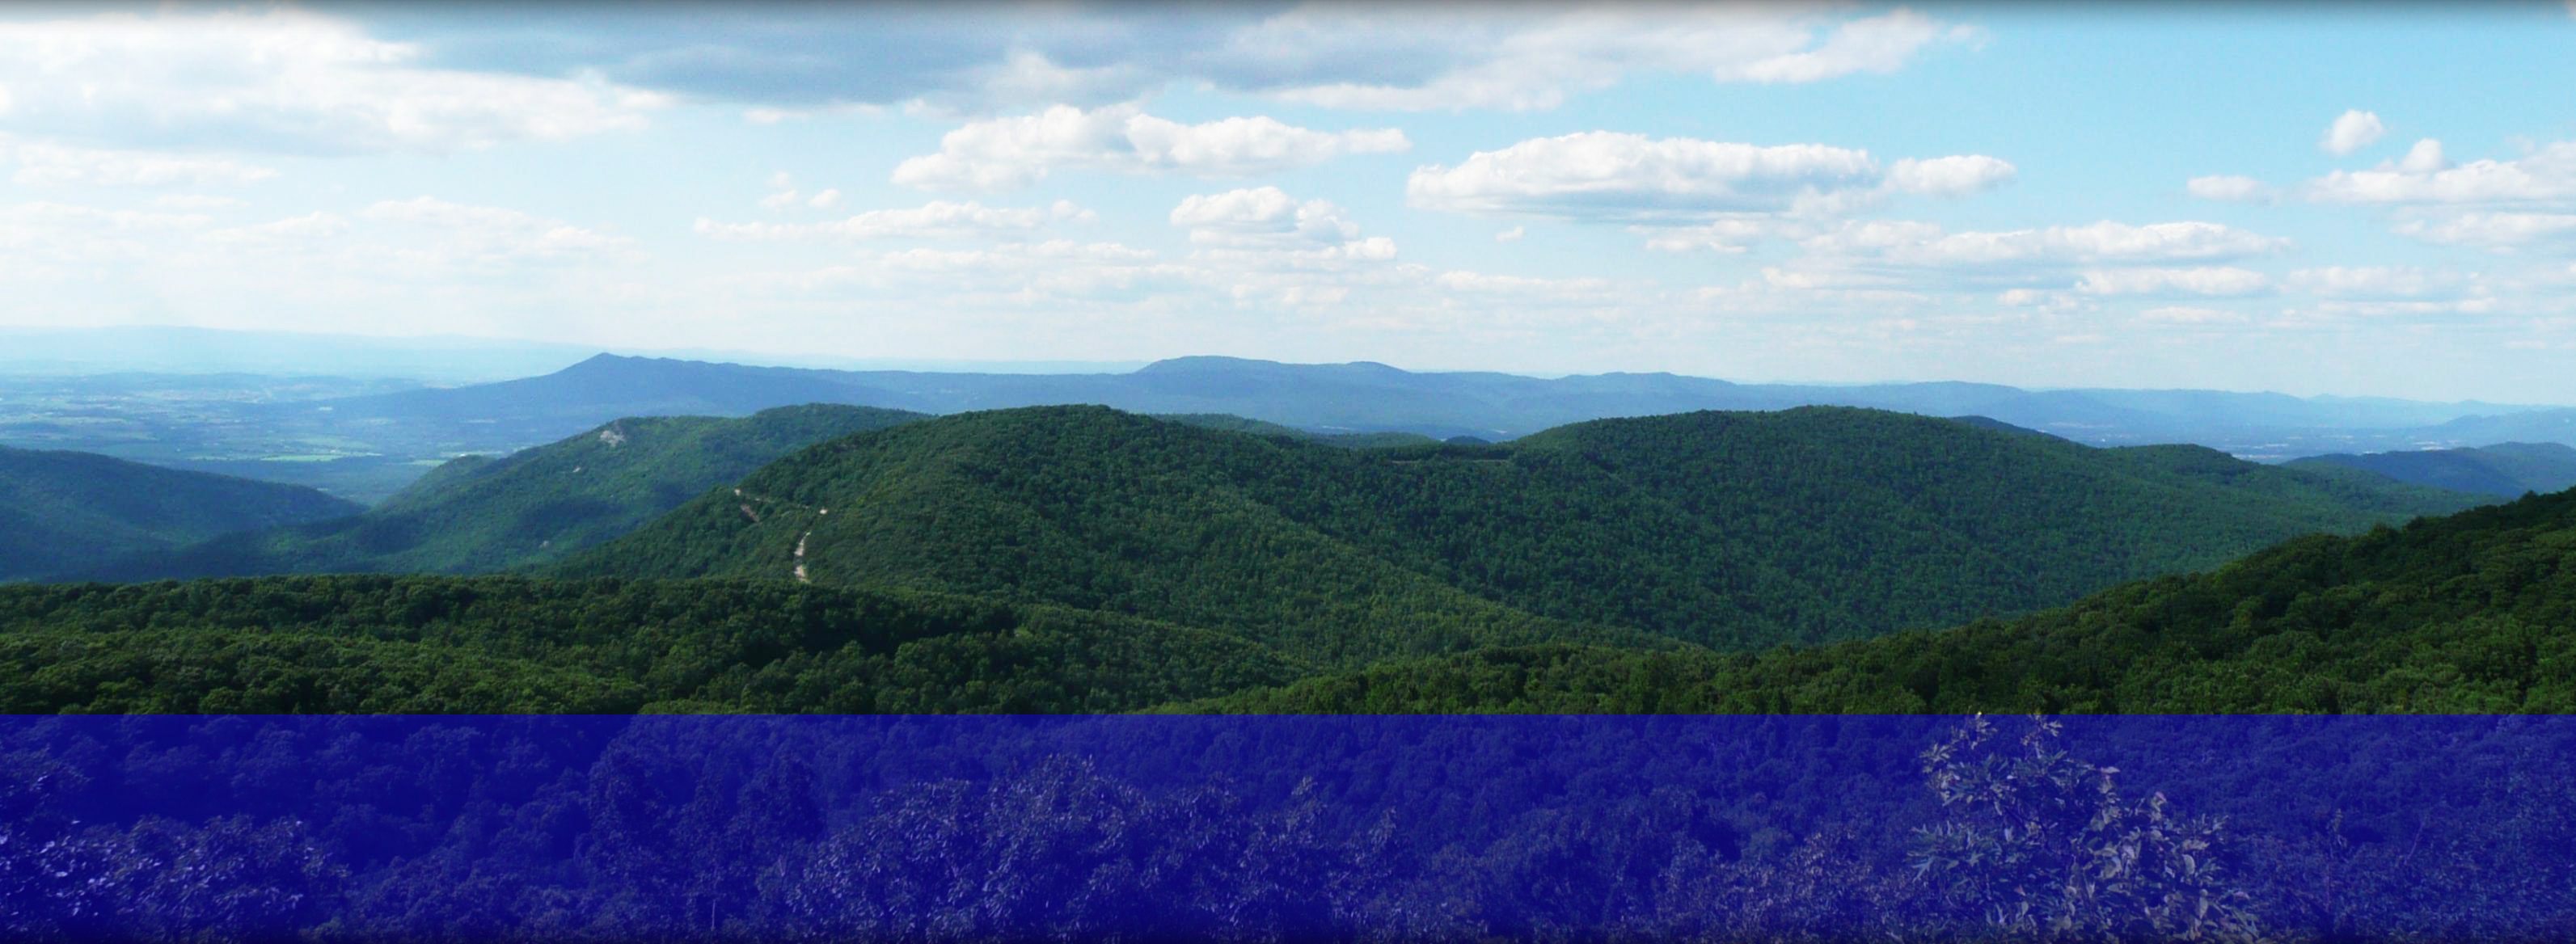 Appalachian_Mountains_22